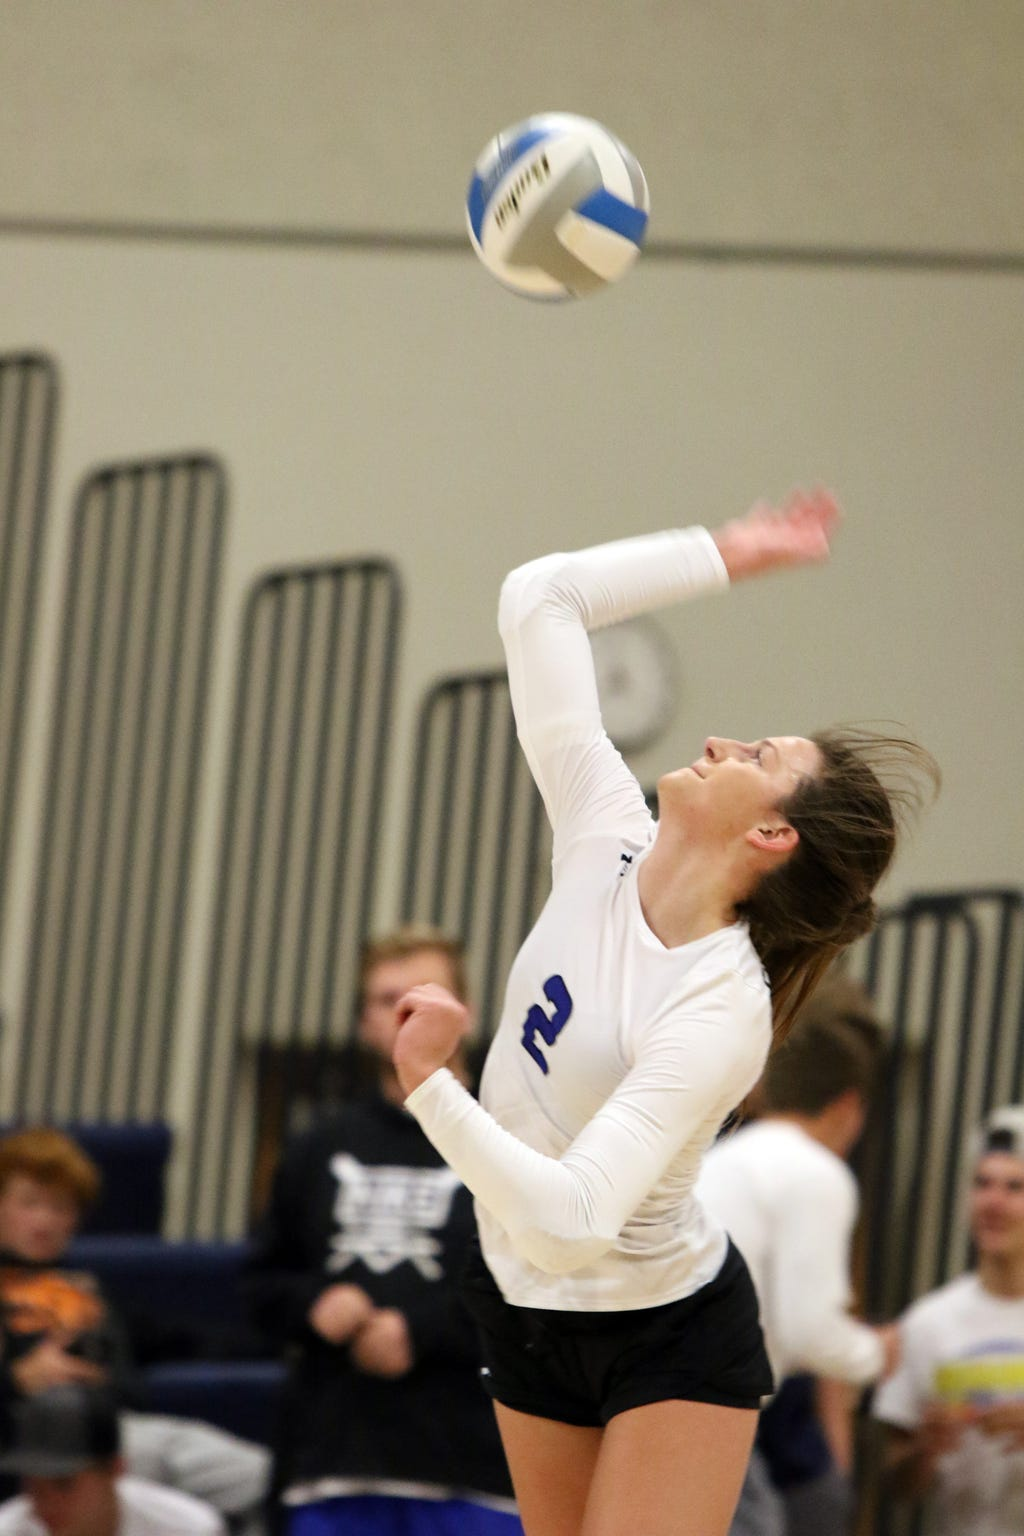 Kylee Van Egdom of Sioux Falls Christian serves during the match with Lennox on Monday night in the Sioux Falls Christian gym.